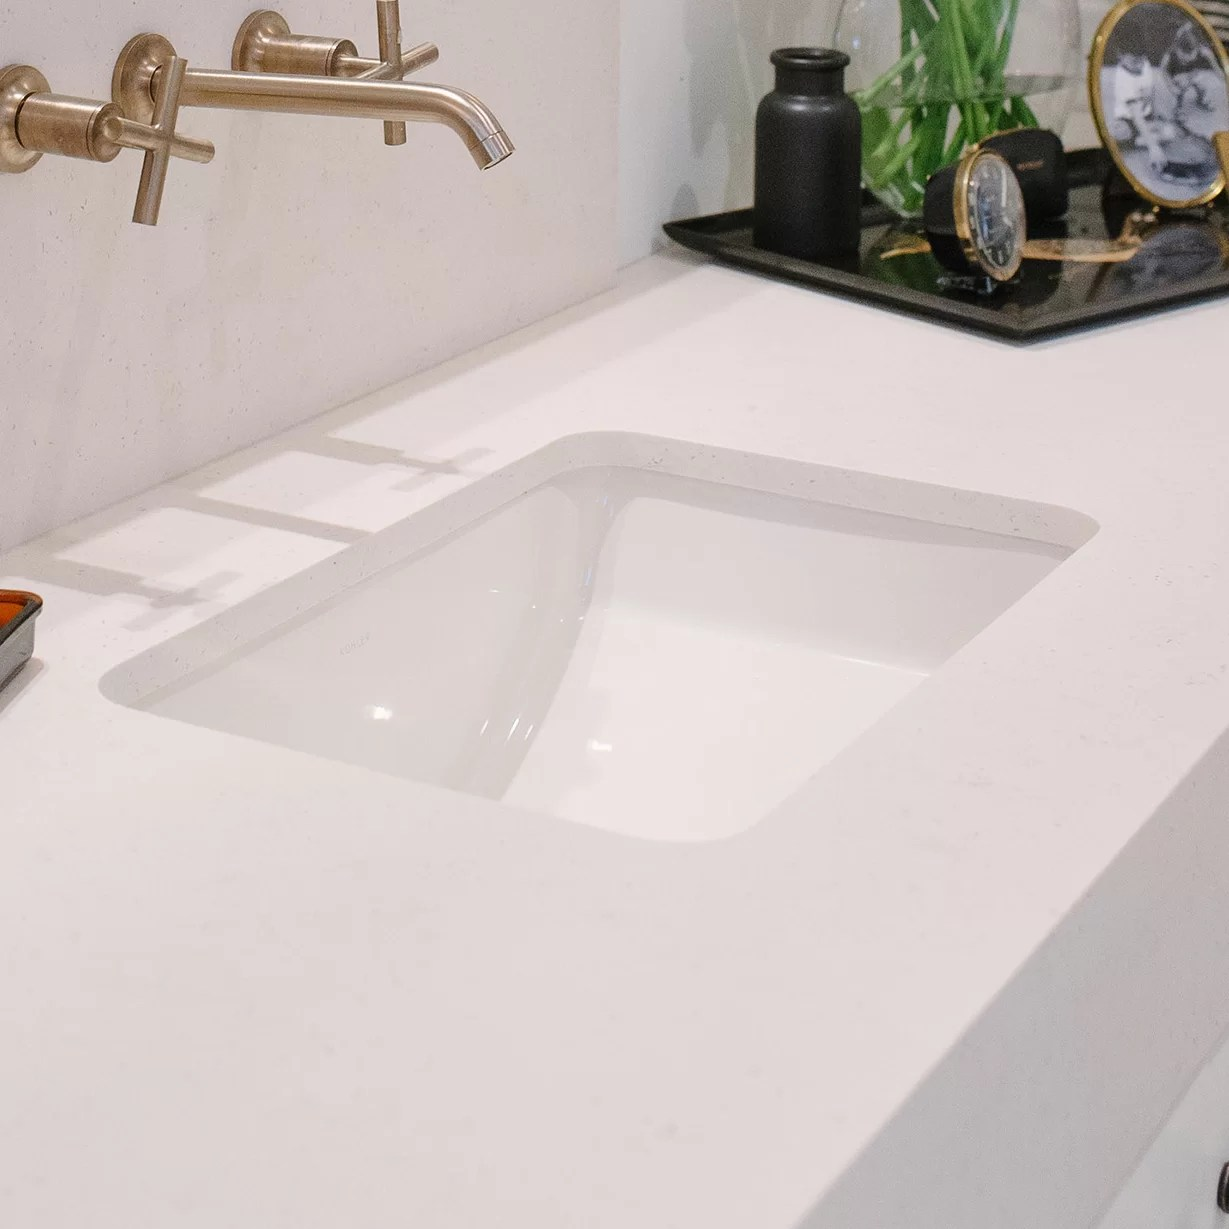 Kohler Ladena Ceramic Rectangular Undermount Bathroom Sink With Overflow Reviews Wayfair Ca